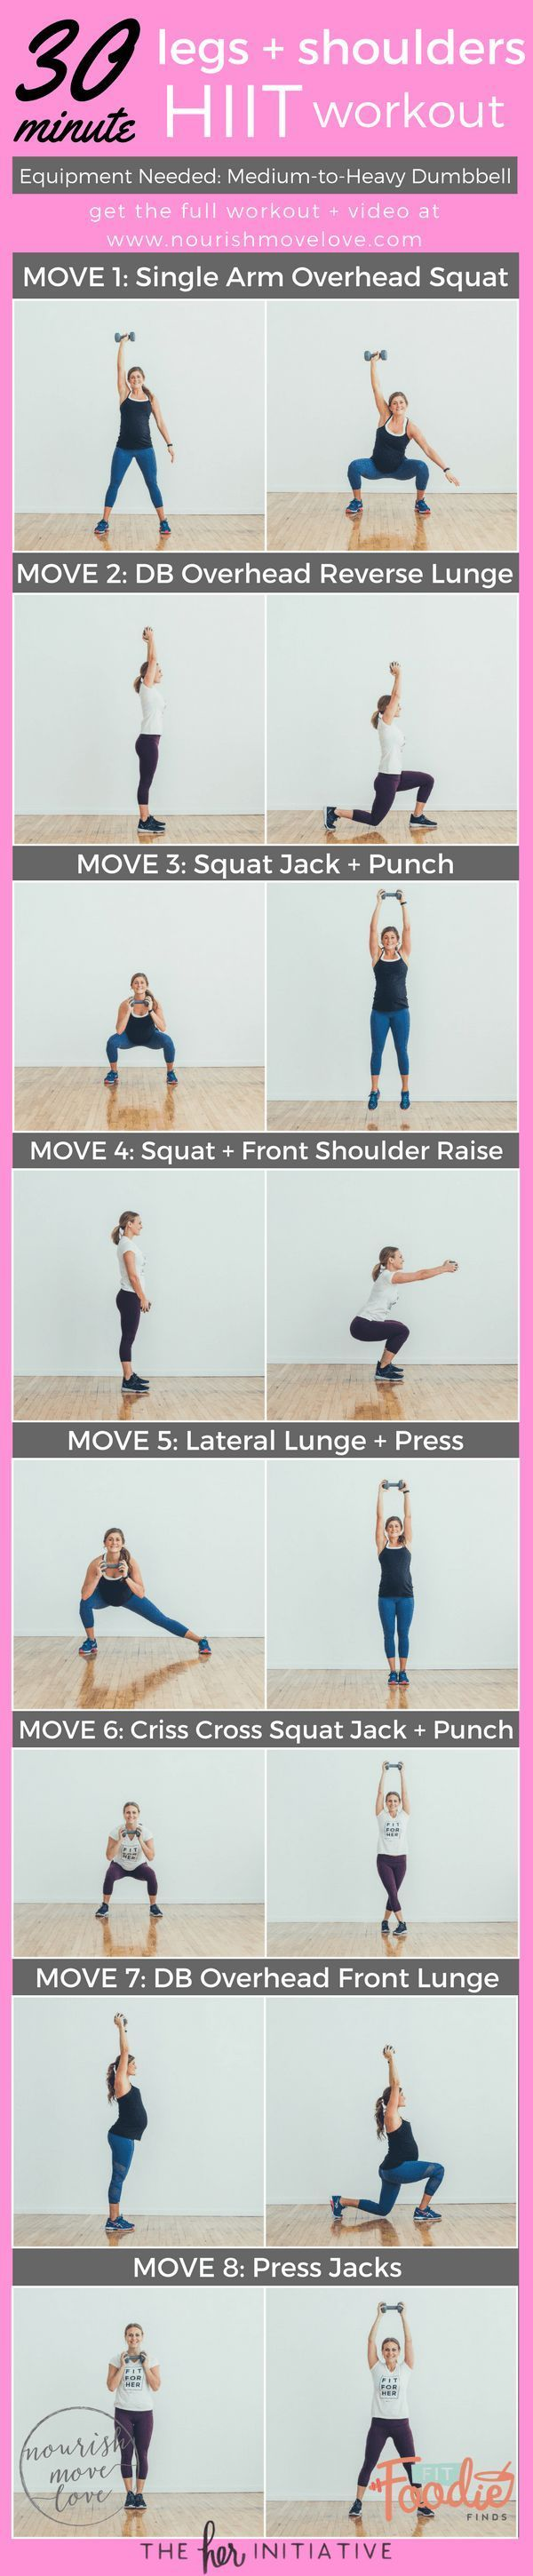 Tone your thighs and get lean shoulders by summer with this 30 Minute Legs + Shoulders HIIT Workout. Perfect naptime workout! | http://www.nourishmovelove.com